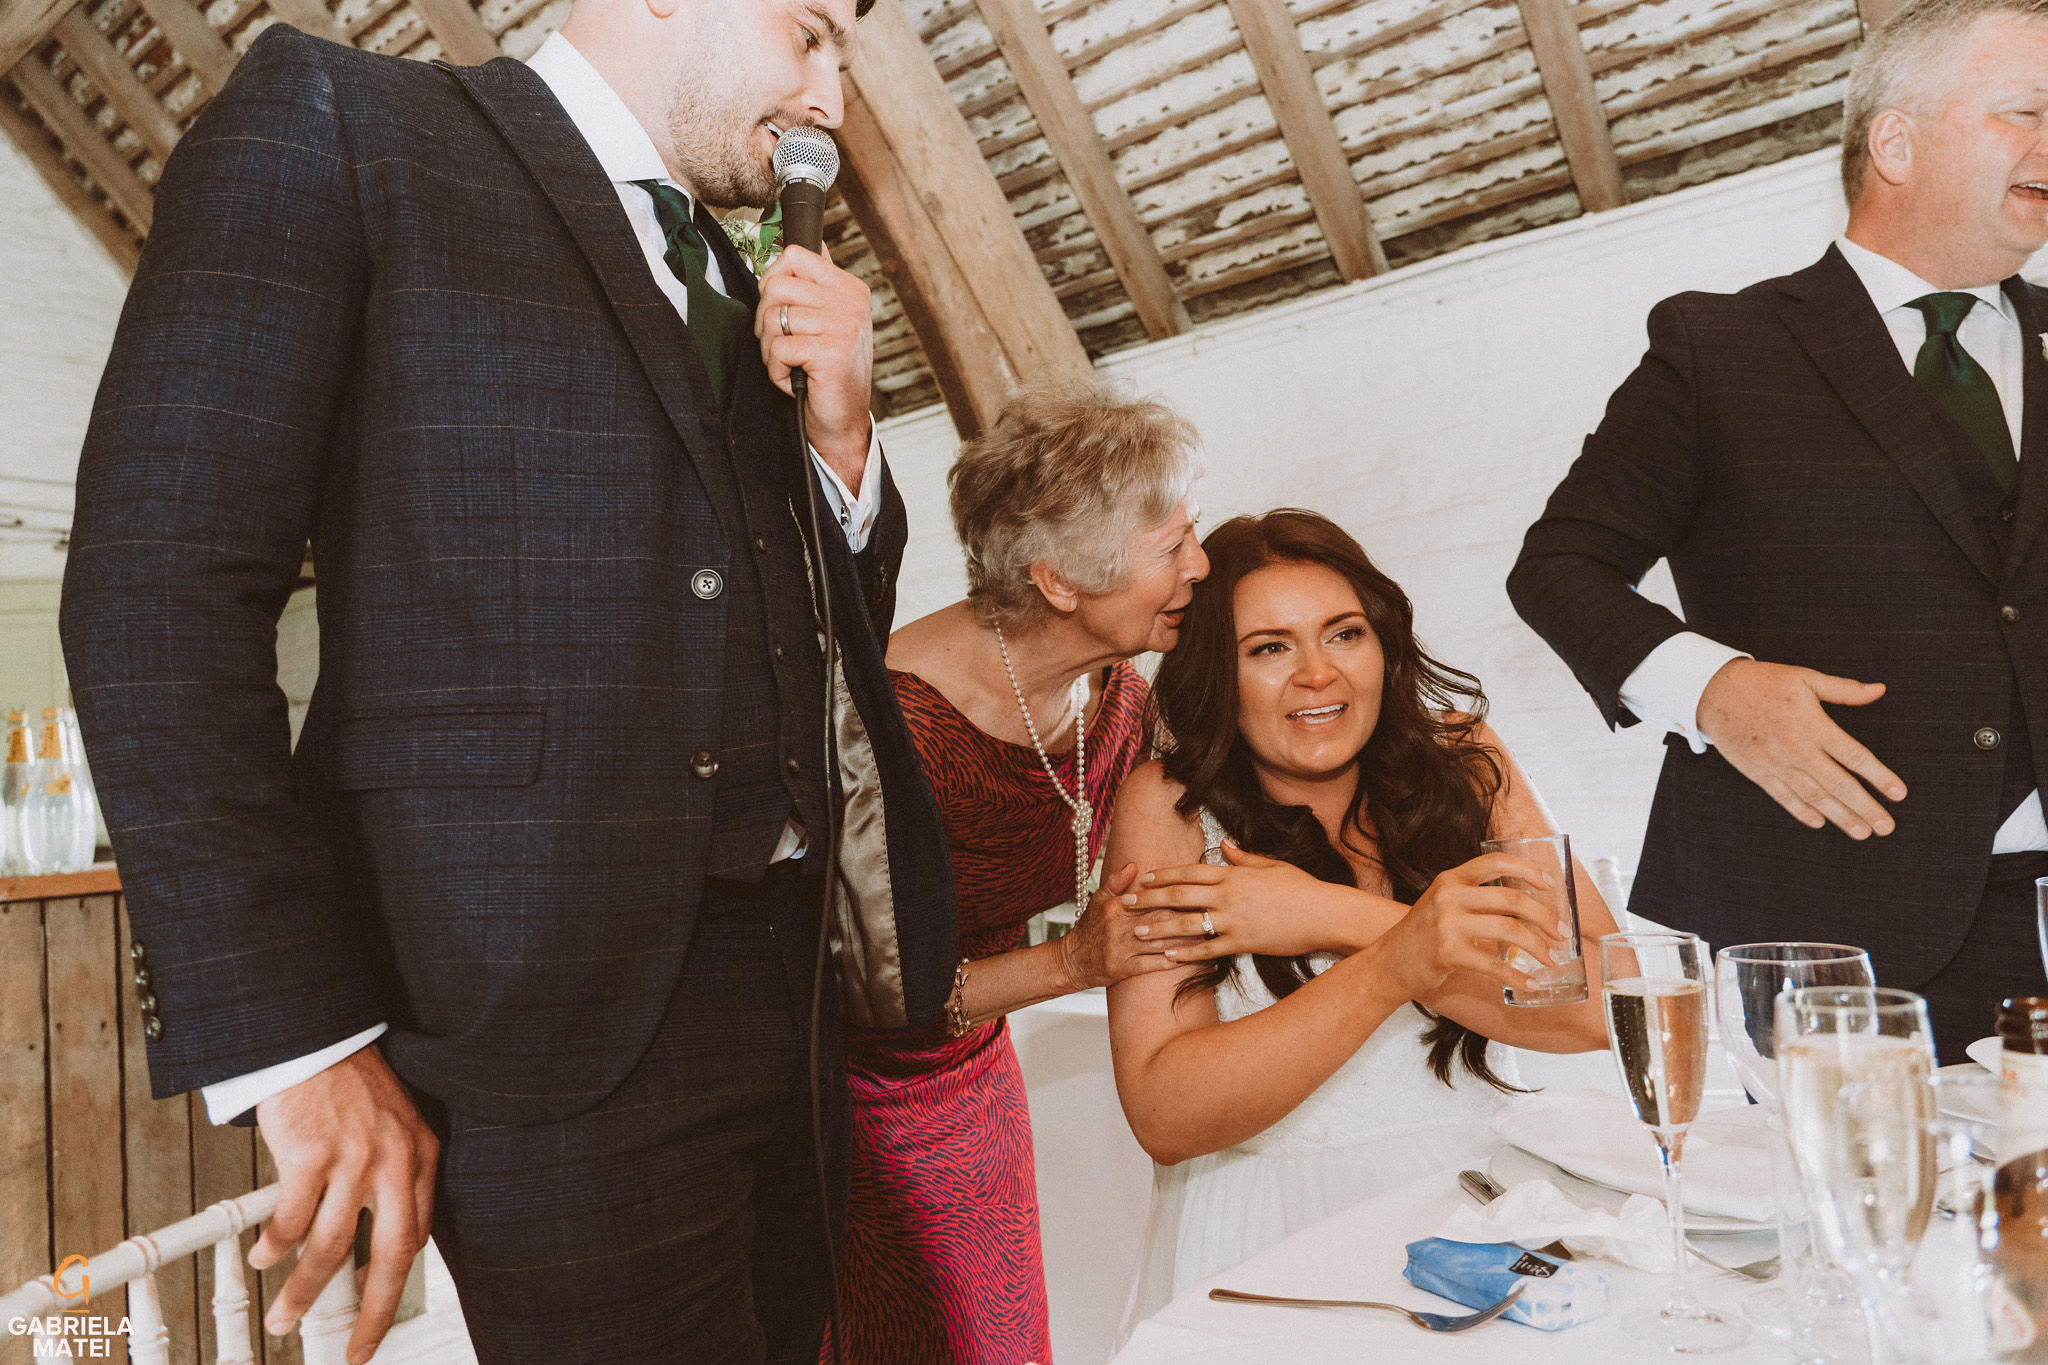 Bride crying during wedding speeches at South Stoke Barn wedding venue in Arundel by gabriela matei sussex photographer